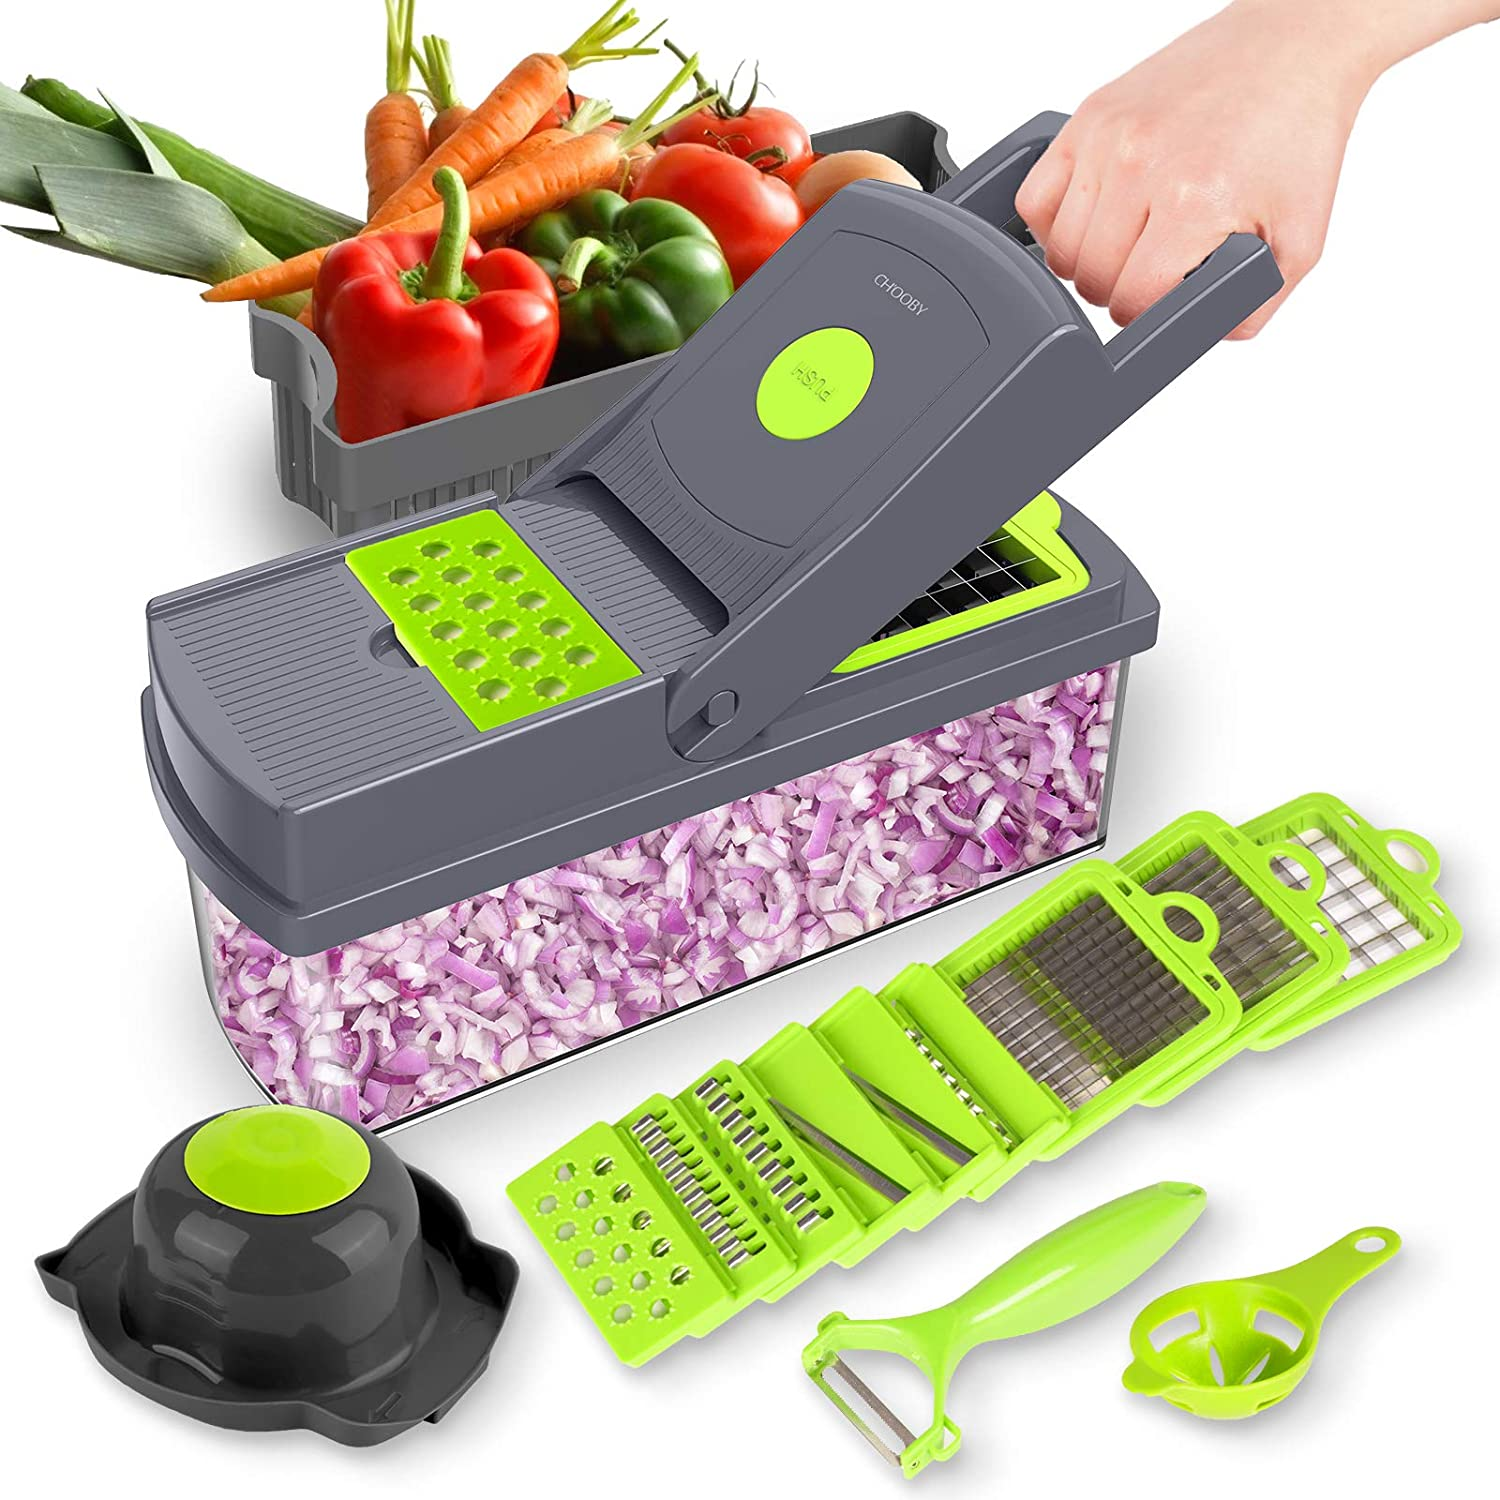 Vegetable Chopper, CHOOBY Onion Chopper Dicer with Container, 14-in-1 Multifunctional Veggie Slicer Food Cutter with 9 Stainless Steel Blades, Household Kitchen Gadgets for Vegetable Fruit